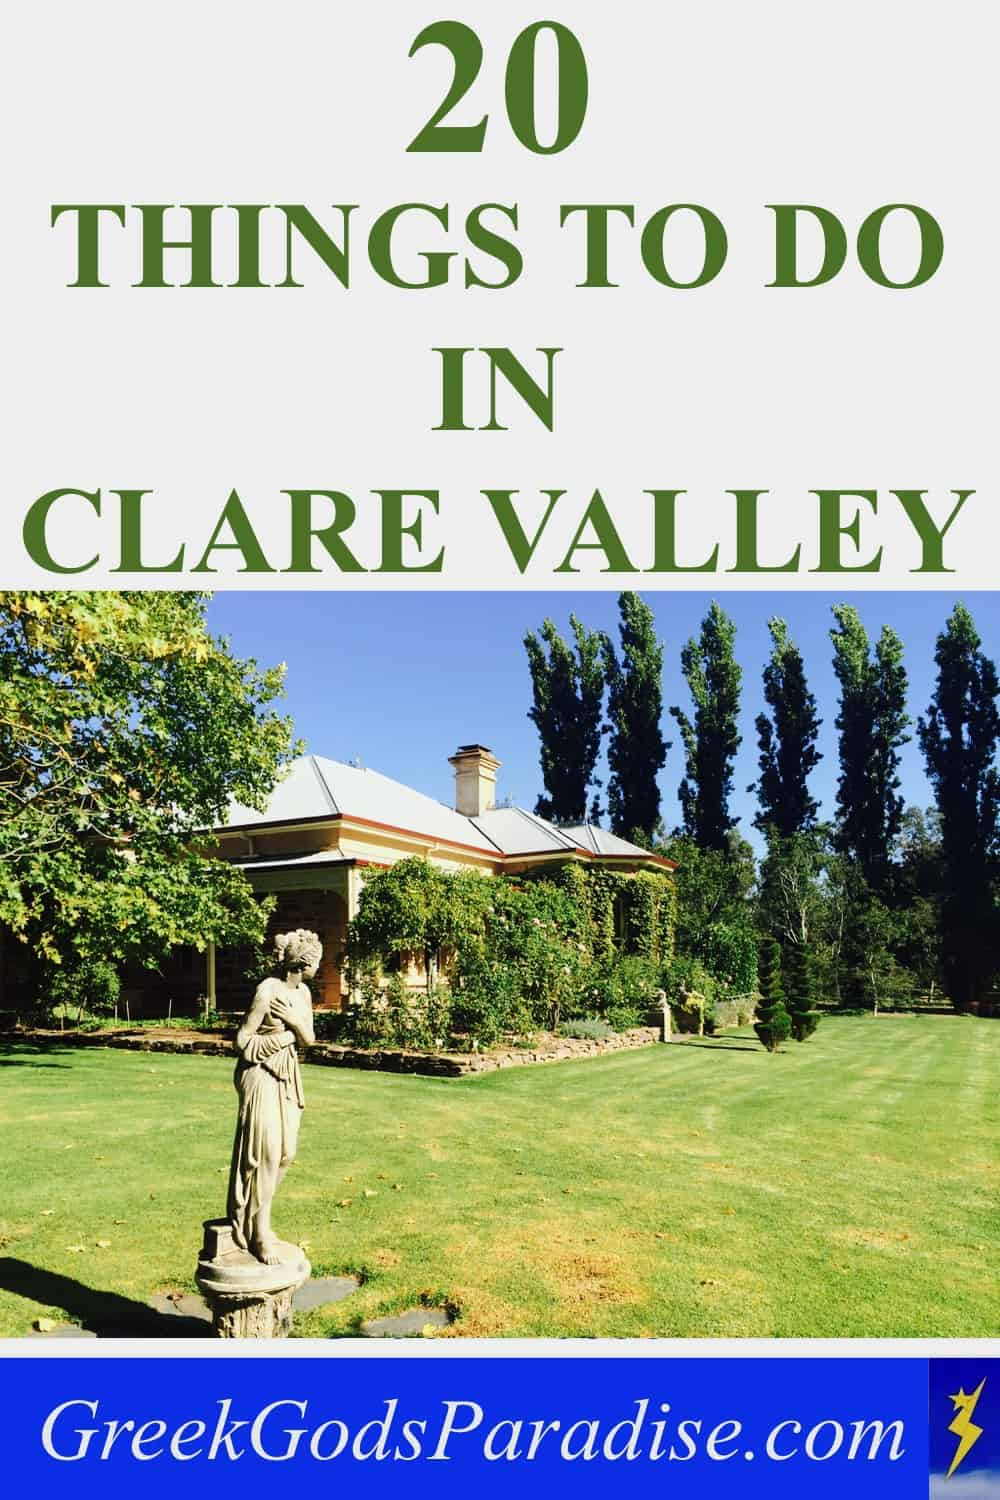 20 Things to do in Clare Valley